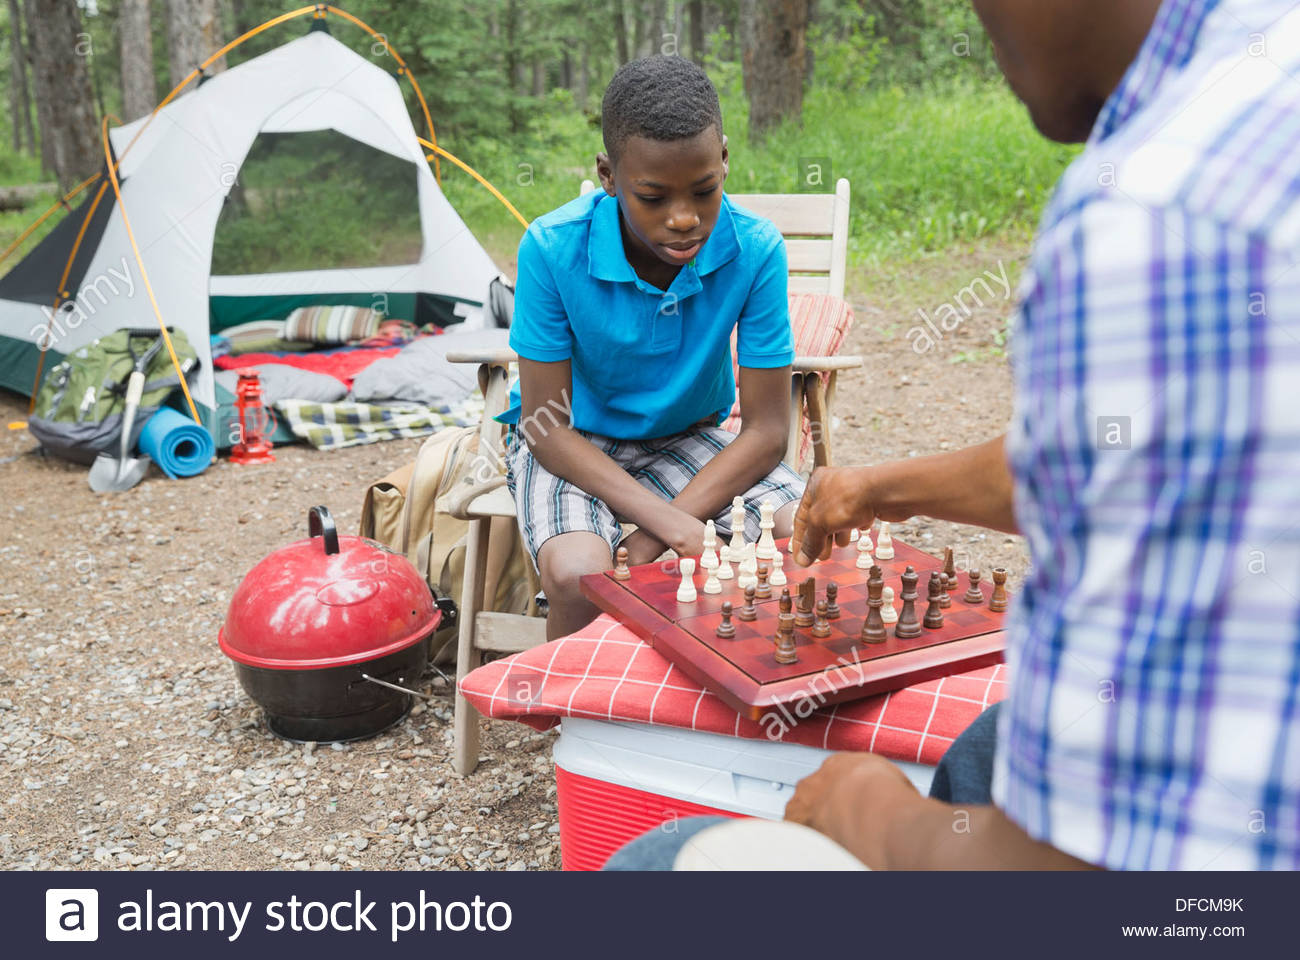 Father and son playing chess at campsite - Stock Image